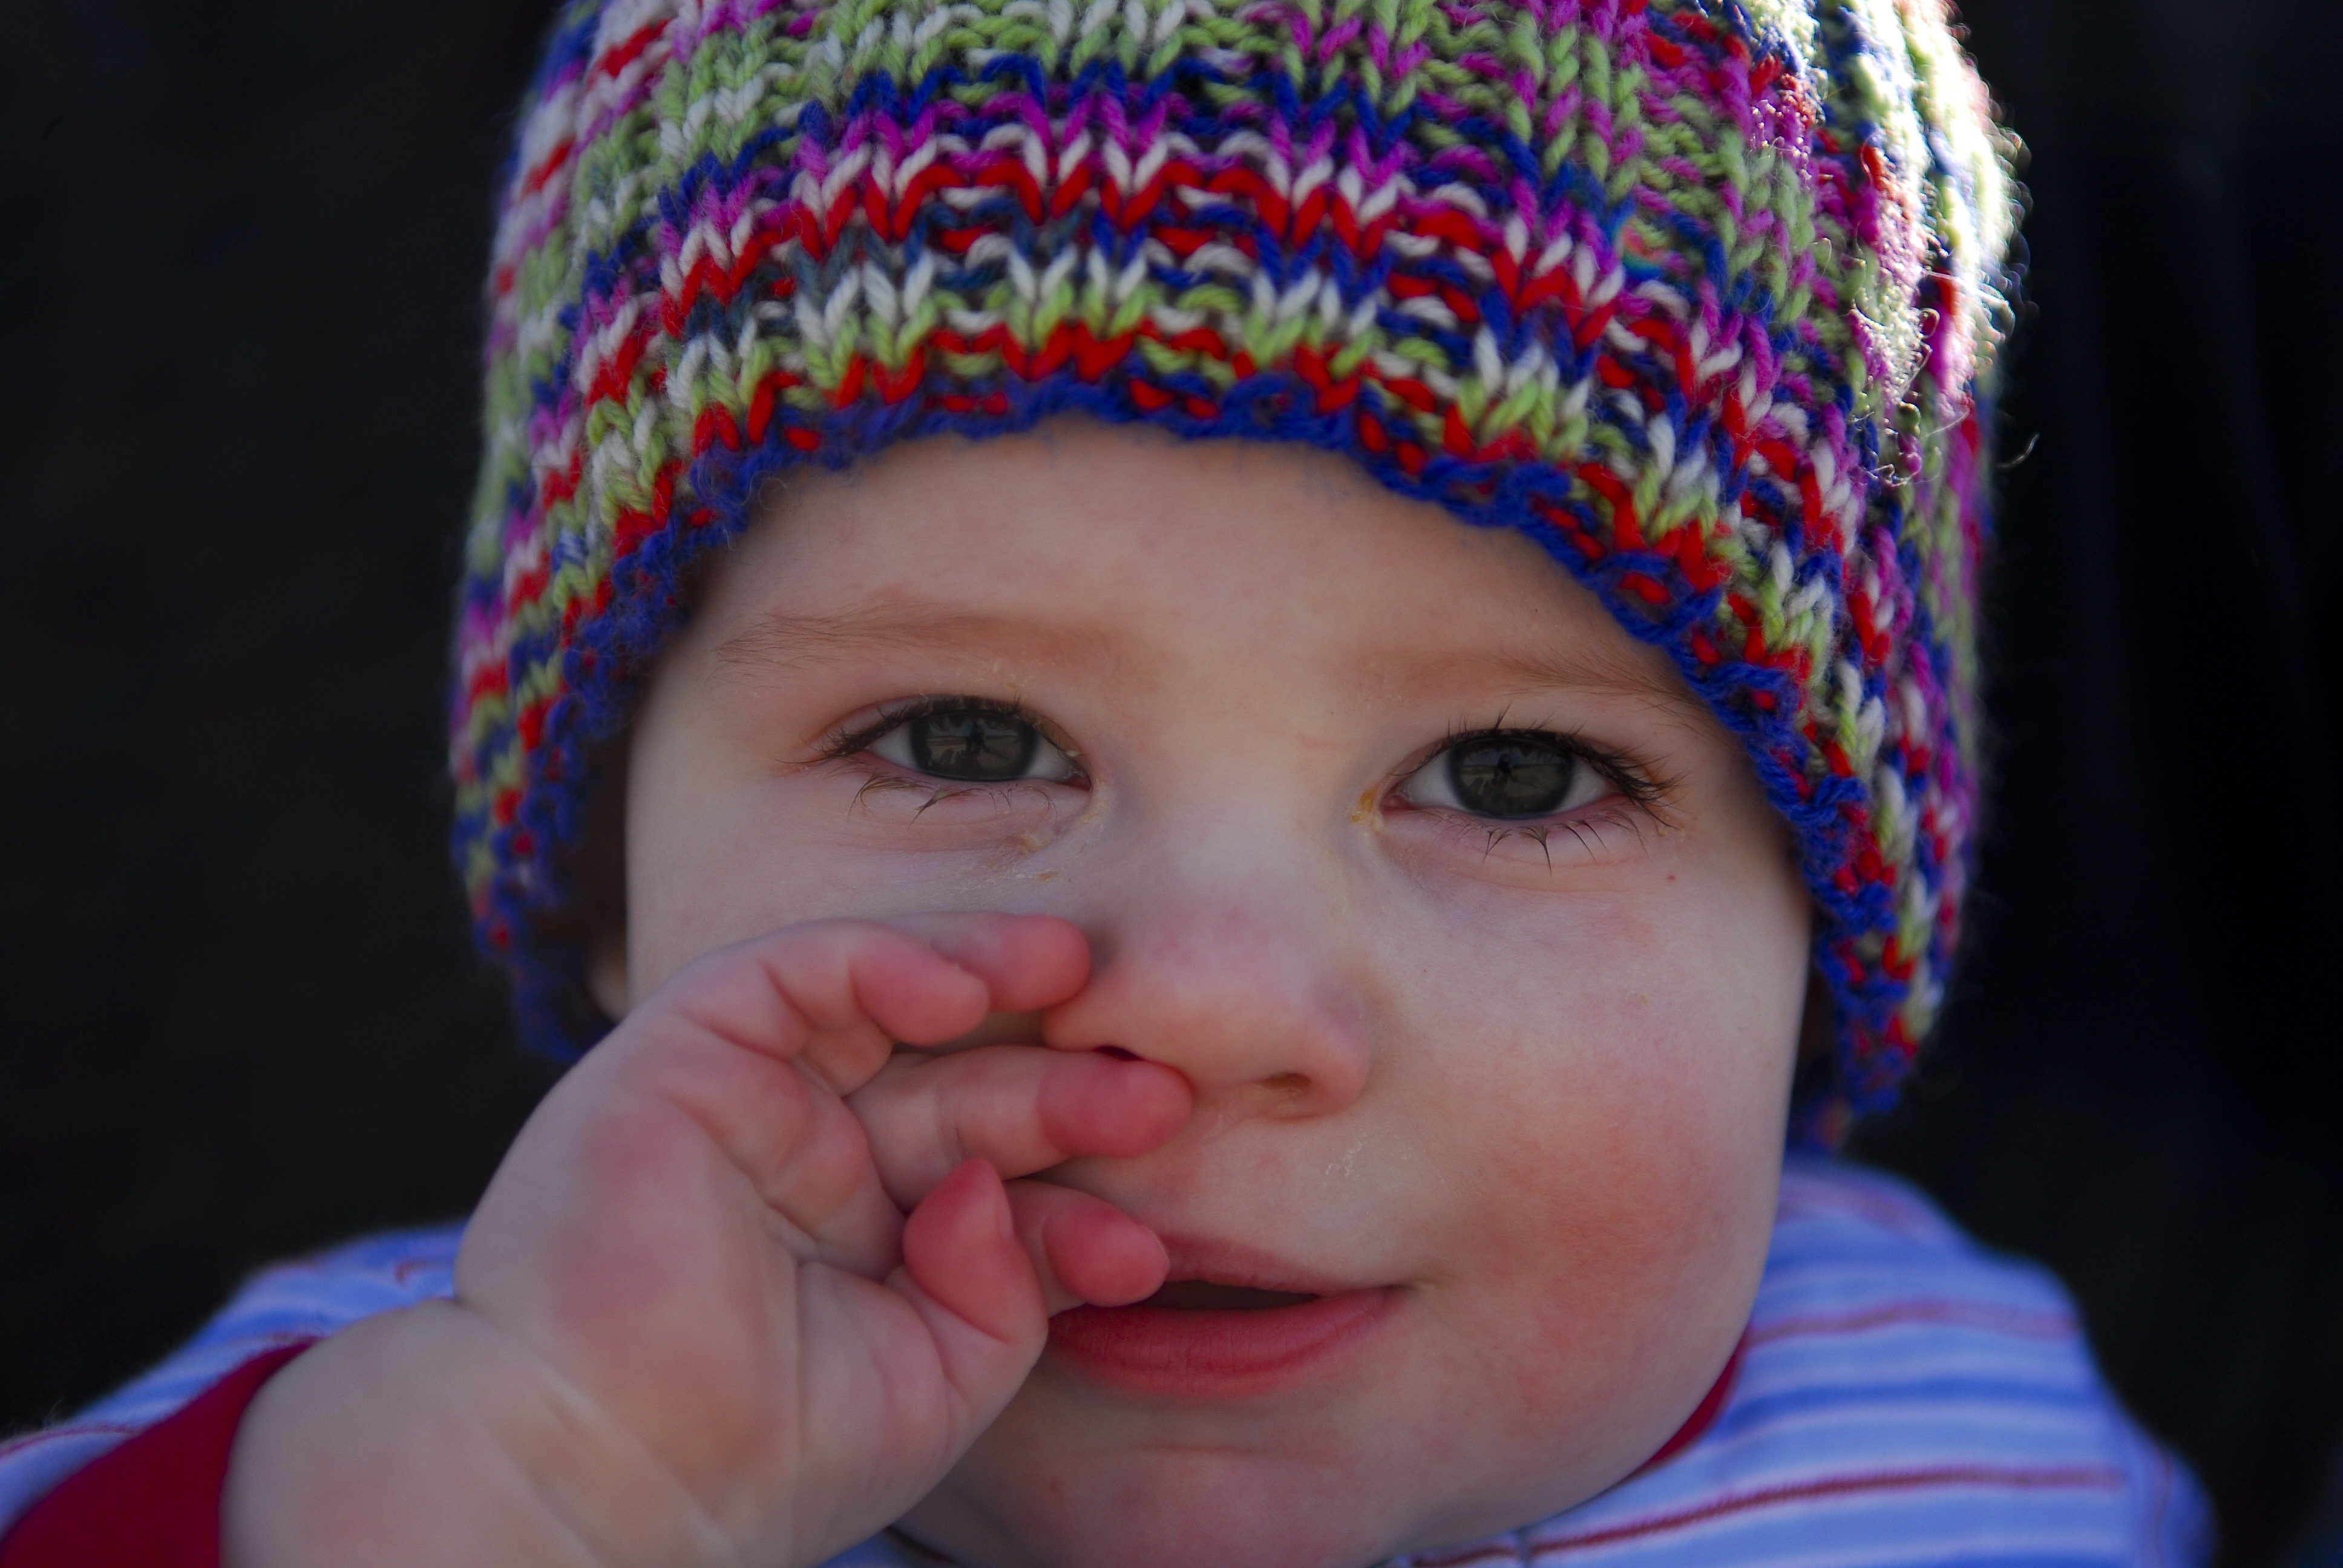 New Disorder Added To List Of Conditions Babies Screened For In